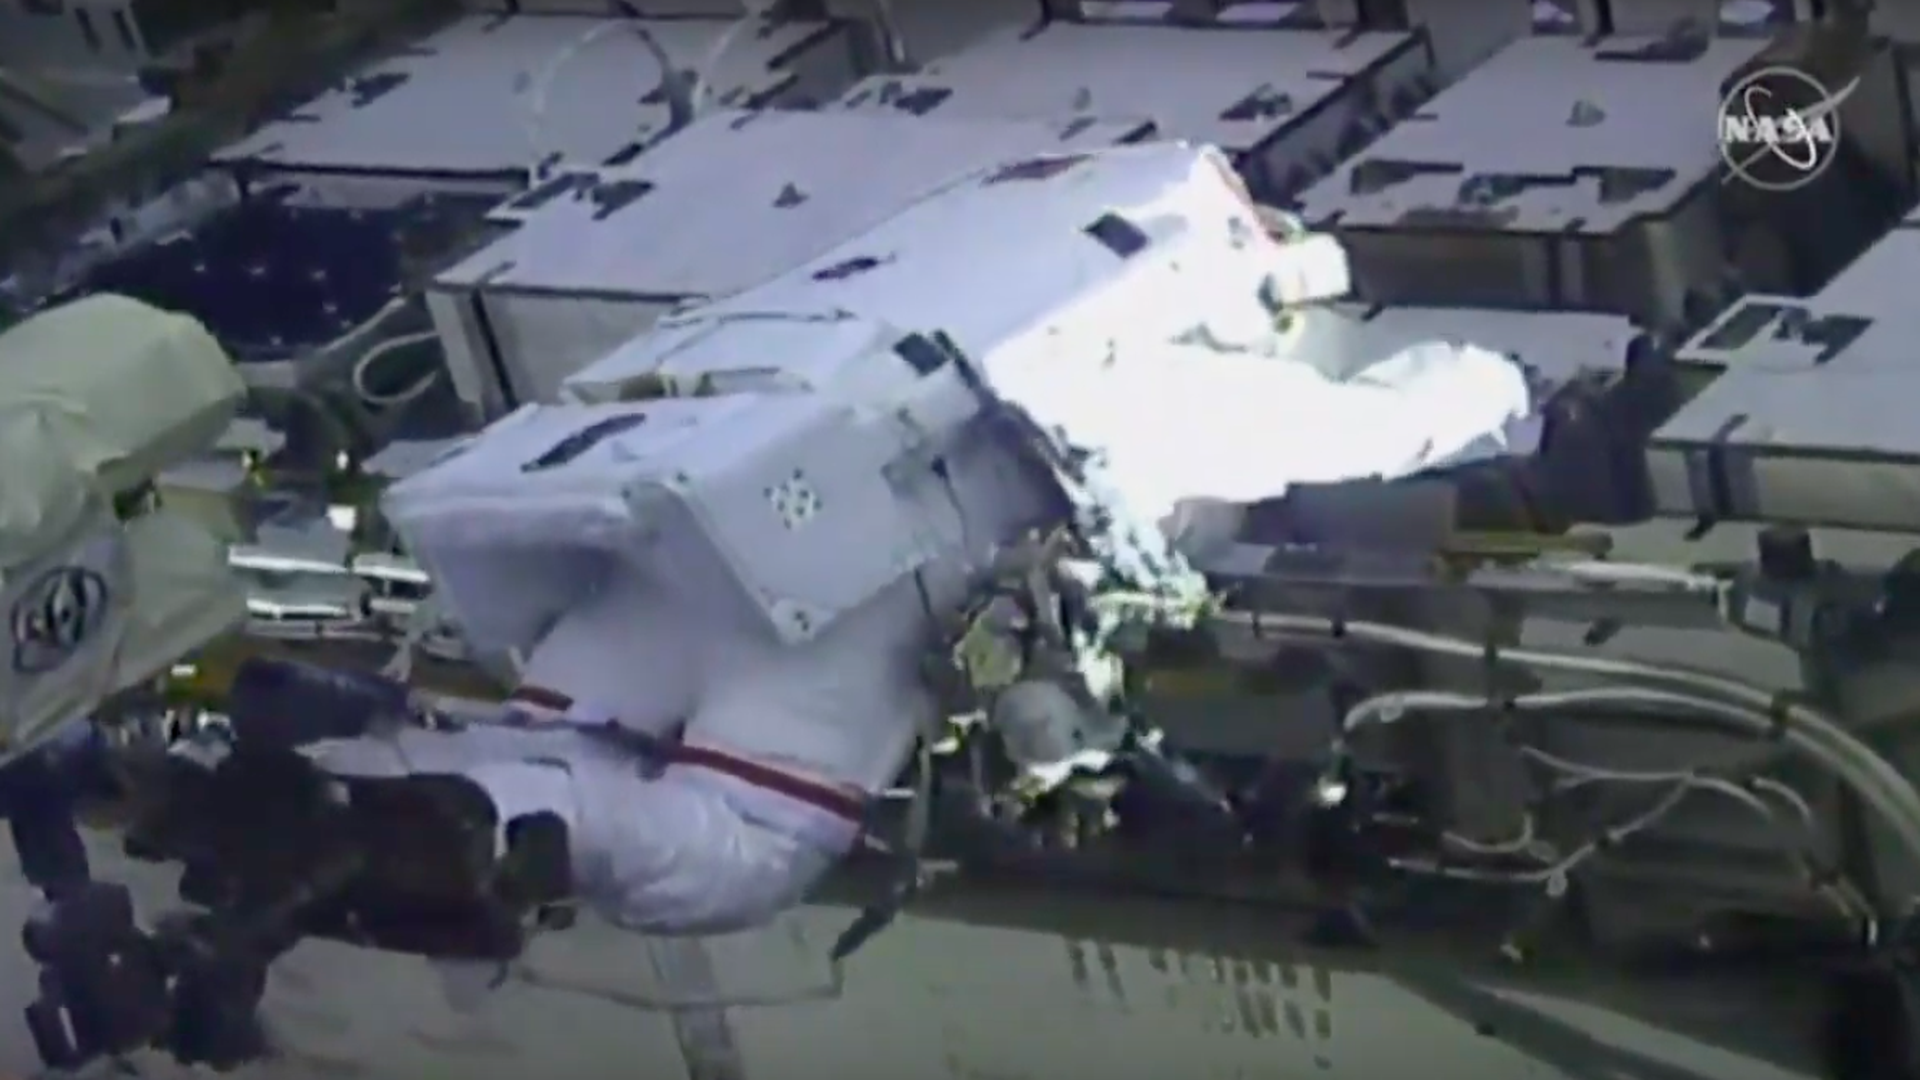 Astronauts step outside for first all-female spacewalk in history